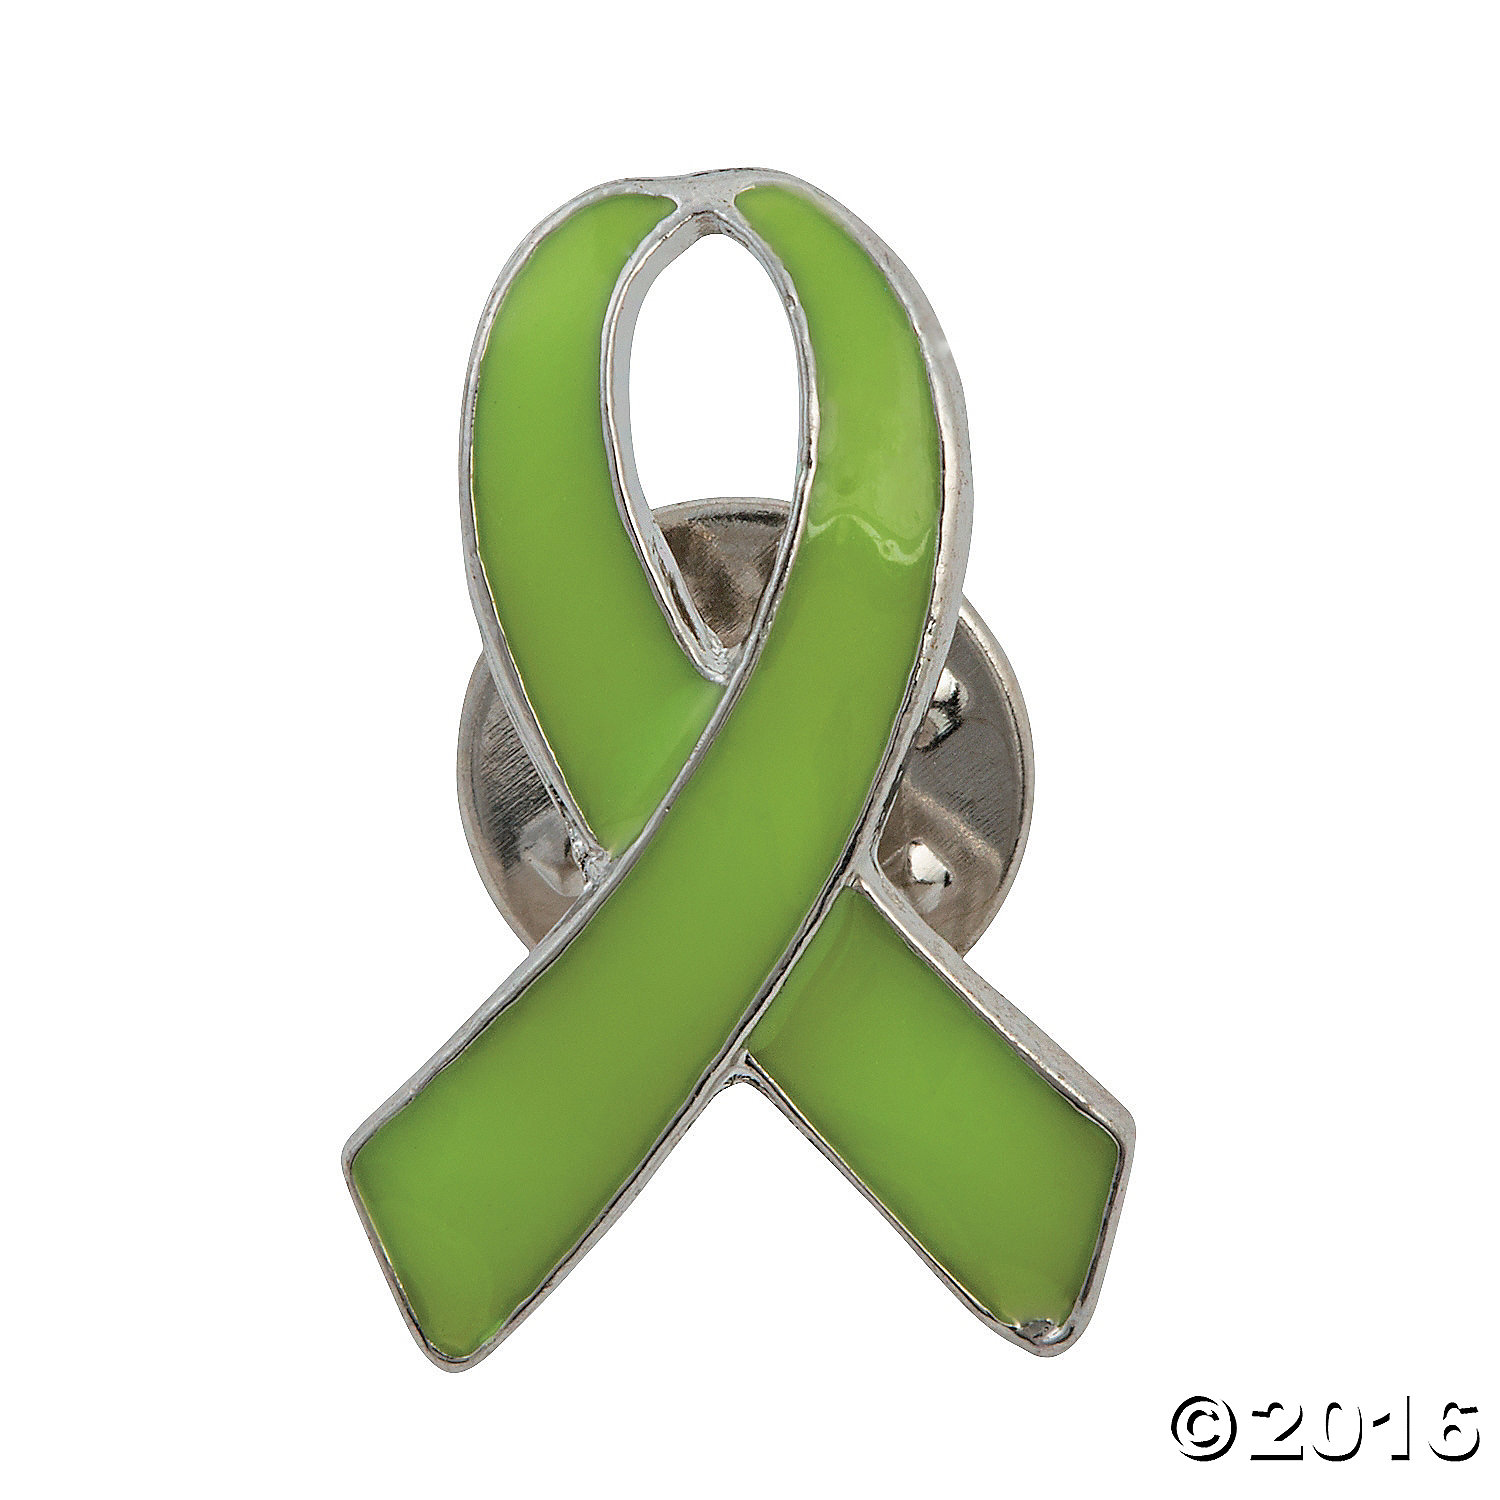 luxury of wearing the about awareness ribbon mental month vector raise by bracelet prevention health social suicide